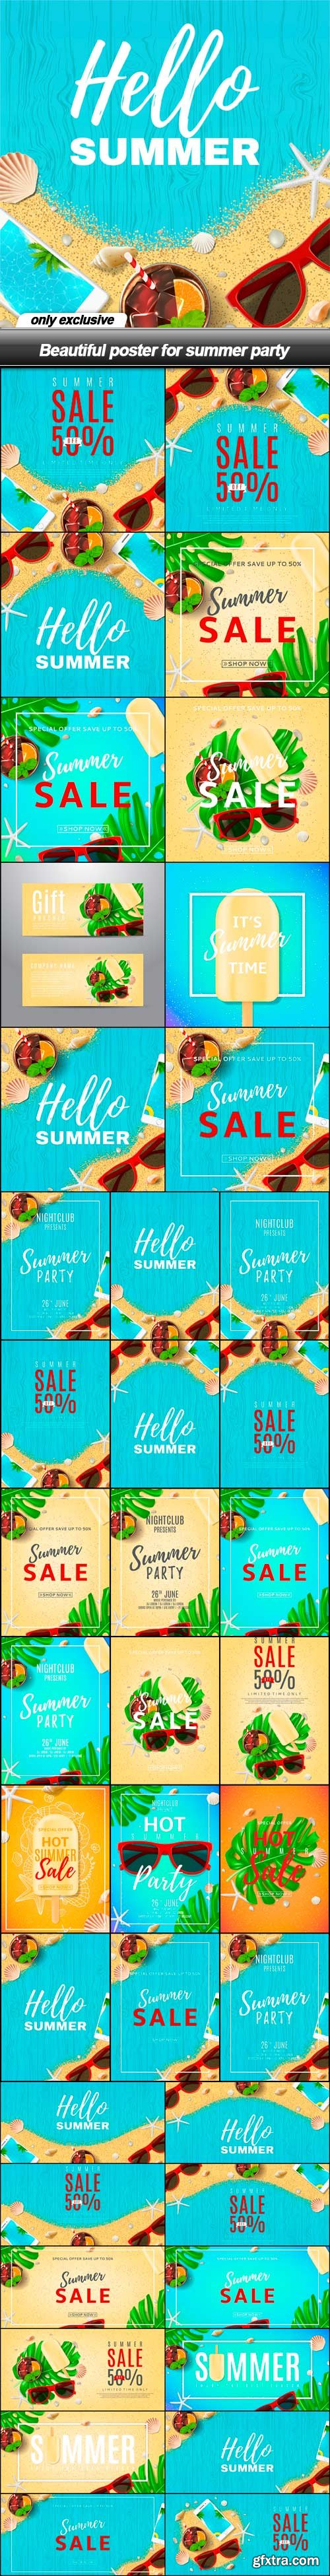 Beautiful poster for summer party - 40 EPS